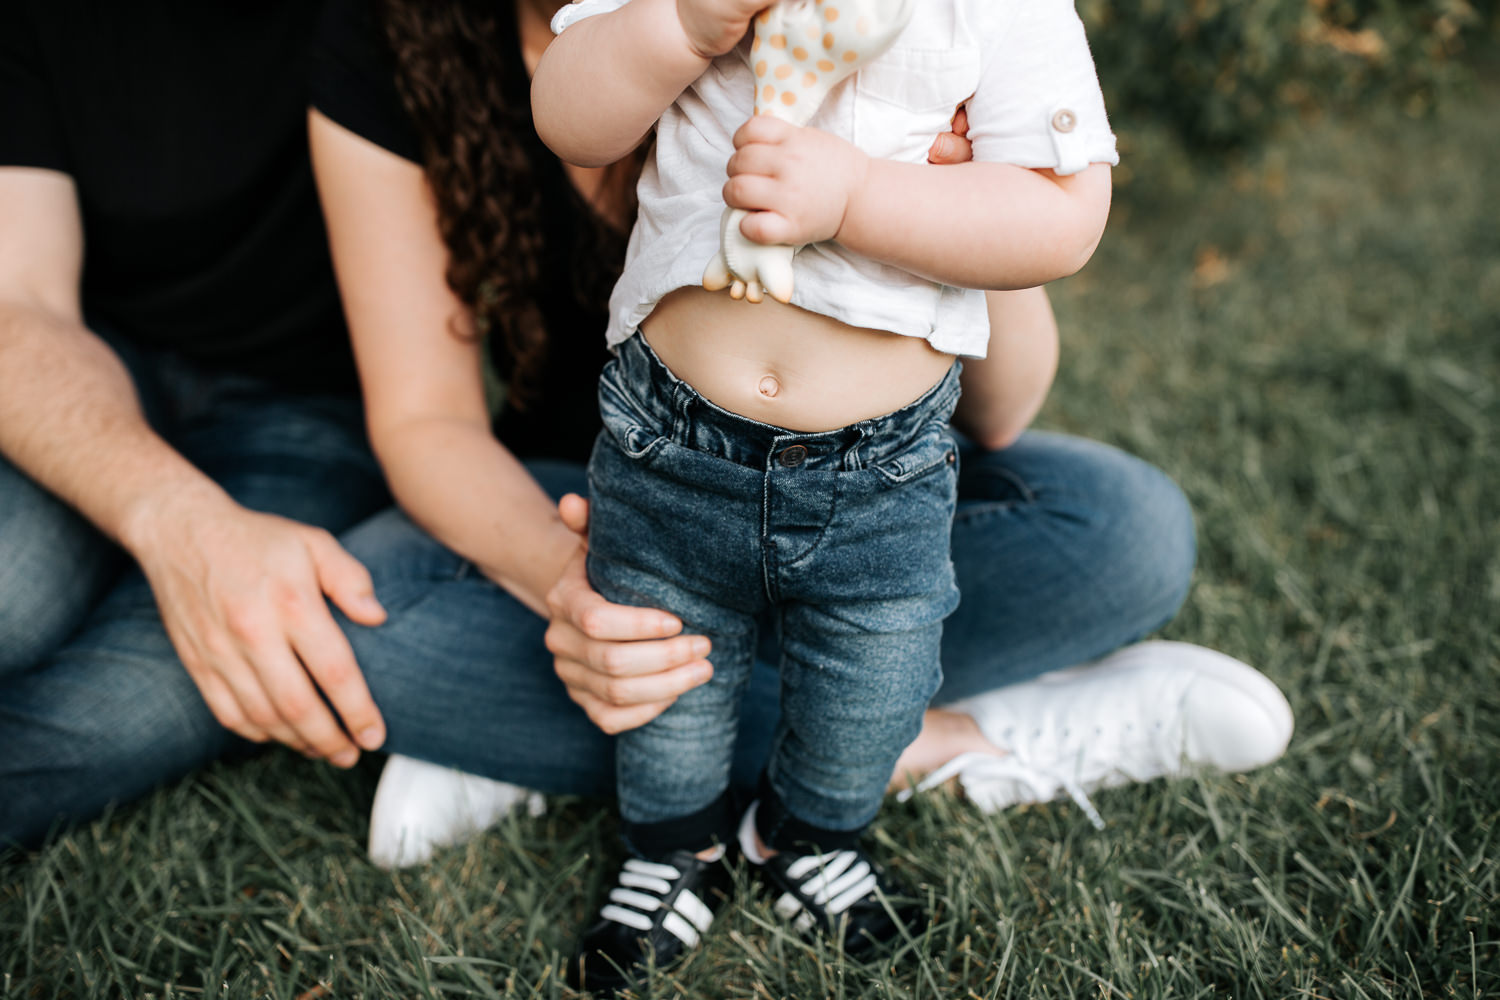 9 month old baby boy in white t-shirt, jeans and sneakers standing holding Sophie the giraffe, mom and dad sitting behind son, close up of bellybutton - Newmarket Lifestyle Photography